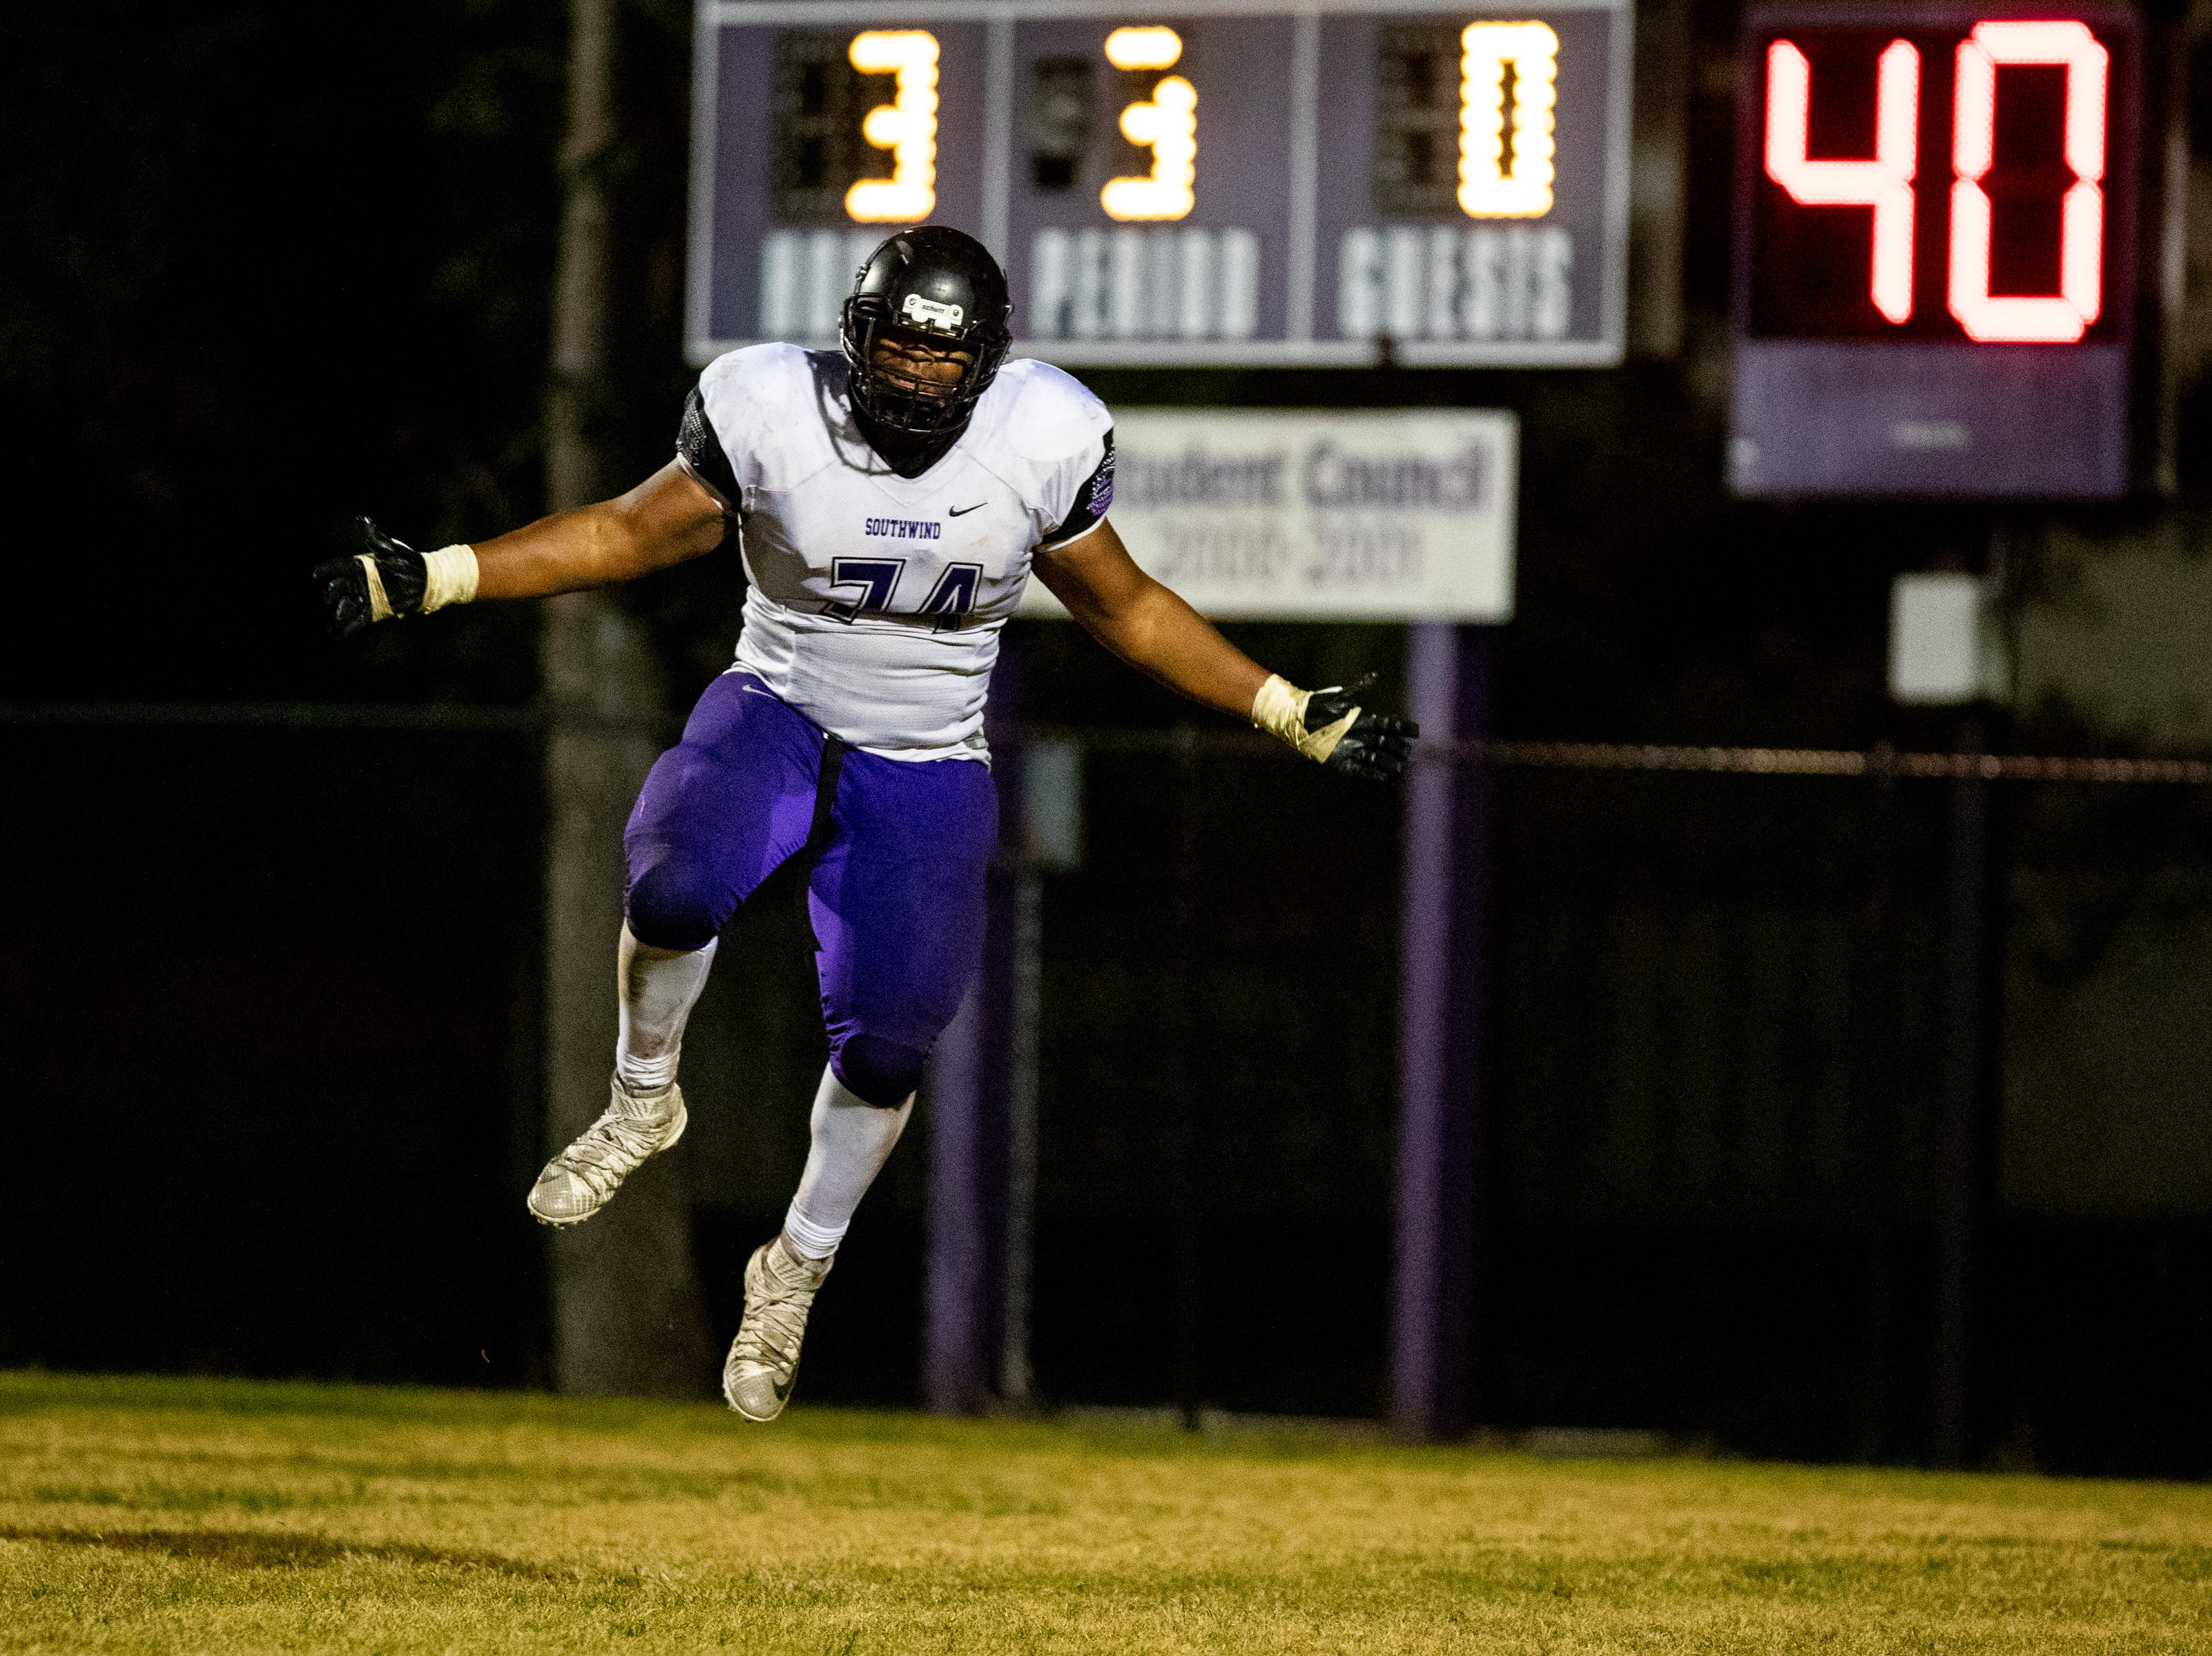 Joshua Bean (74) of Southwind celebrates during the second half at Clarksville High Friday, Nov. 2, 2018, in Clarksville, Tenn.